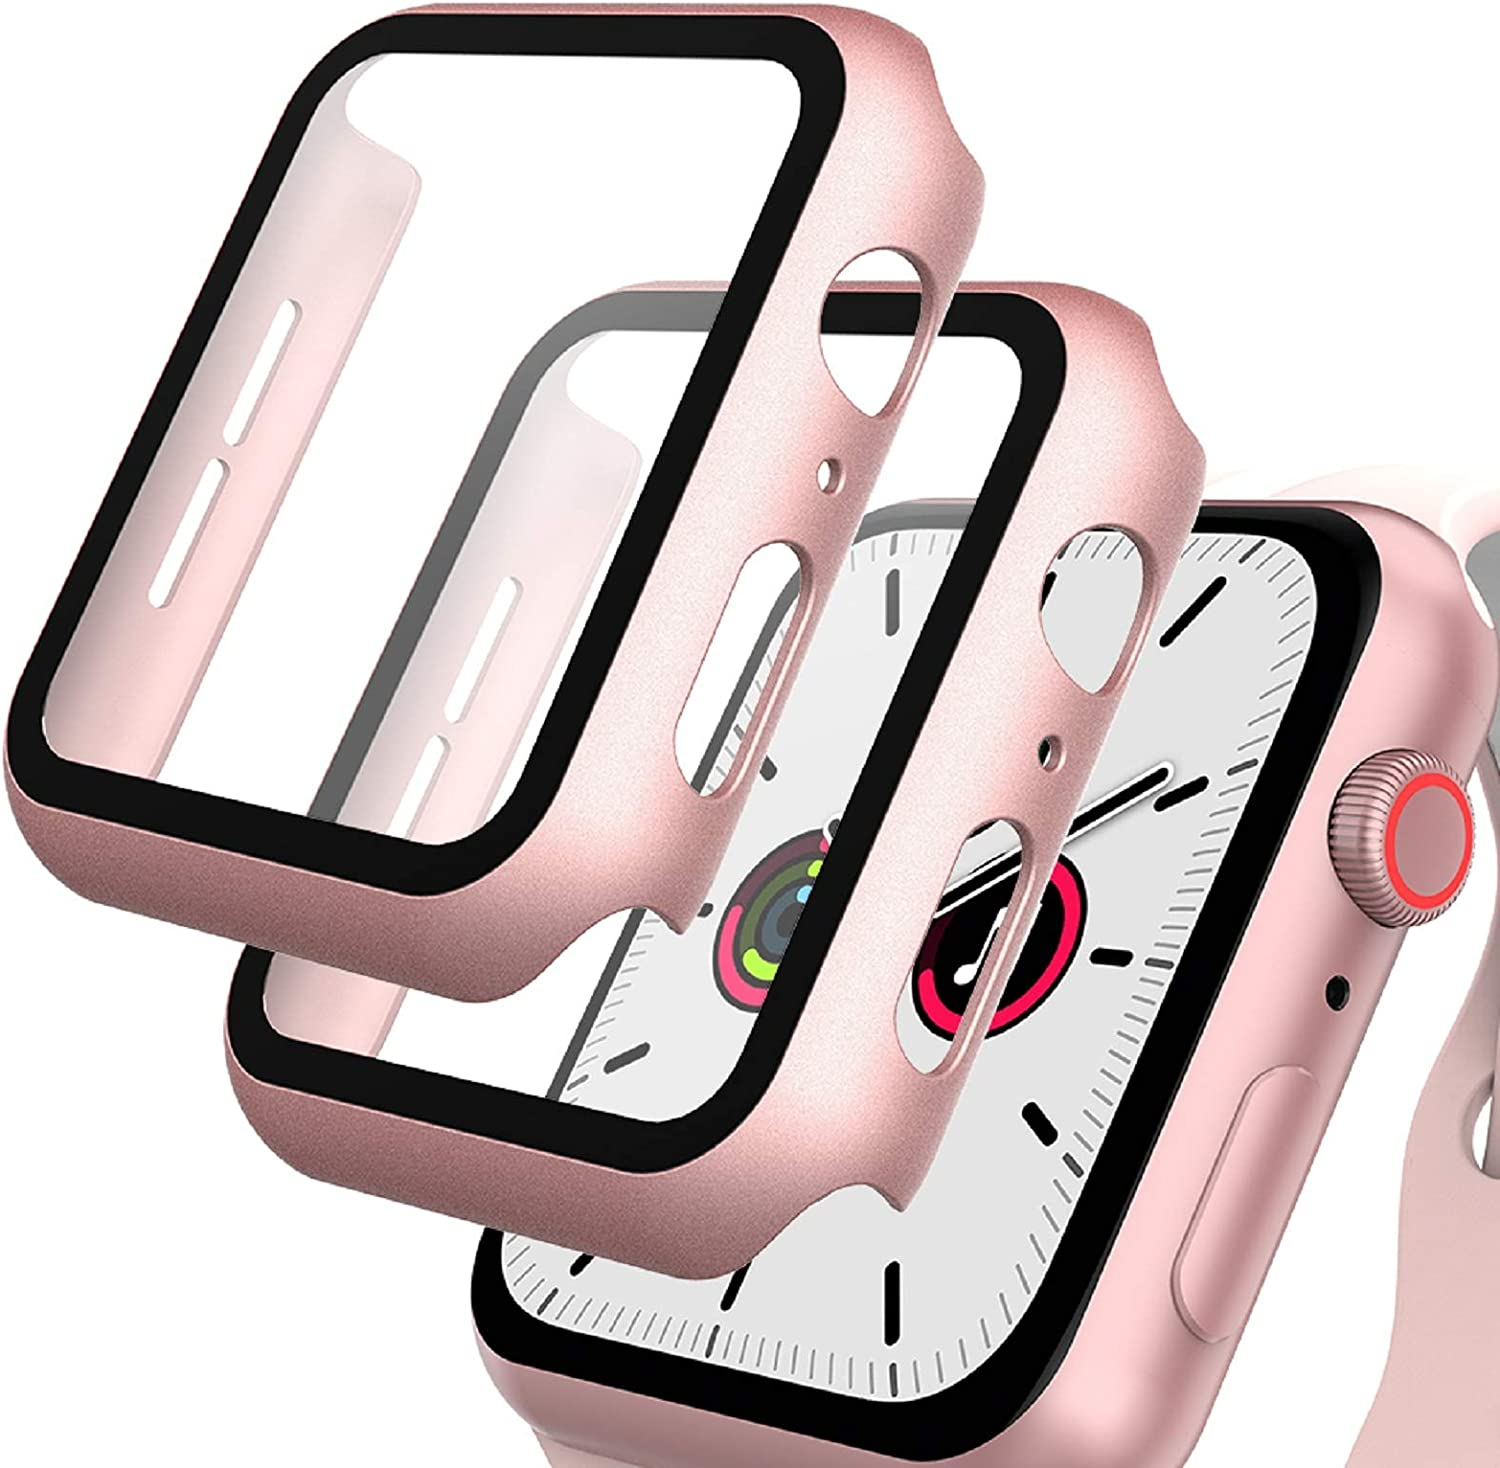 GeeRic Screen Protector Compatible with Apple Watch SE/6/5/4 40mm, 2 Pack Tempered Glass Film with Hard PC Case, Rose Gold